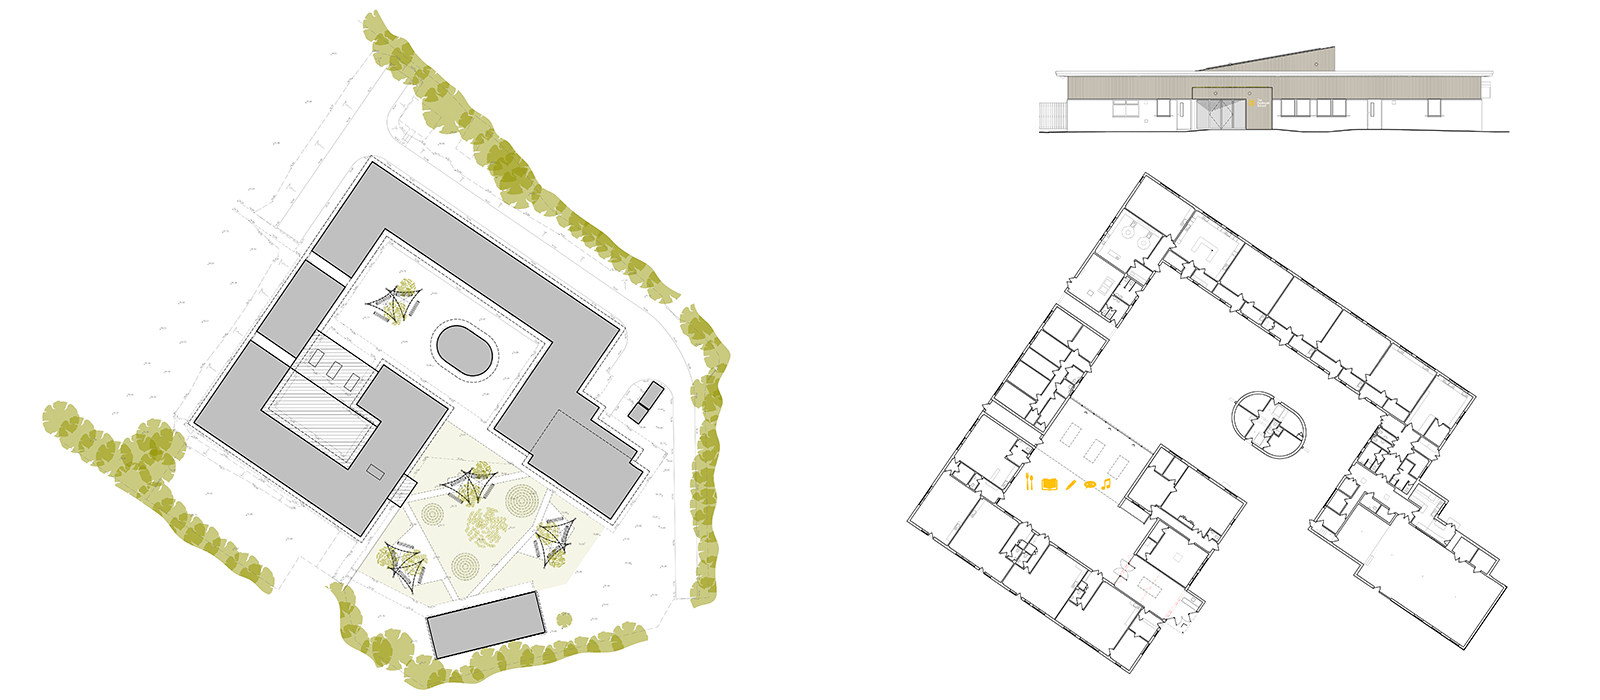 gyd-architecture   plans and elevations